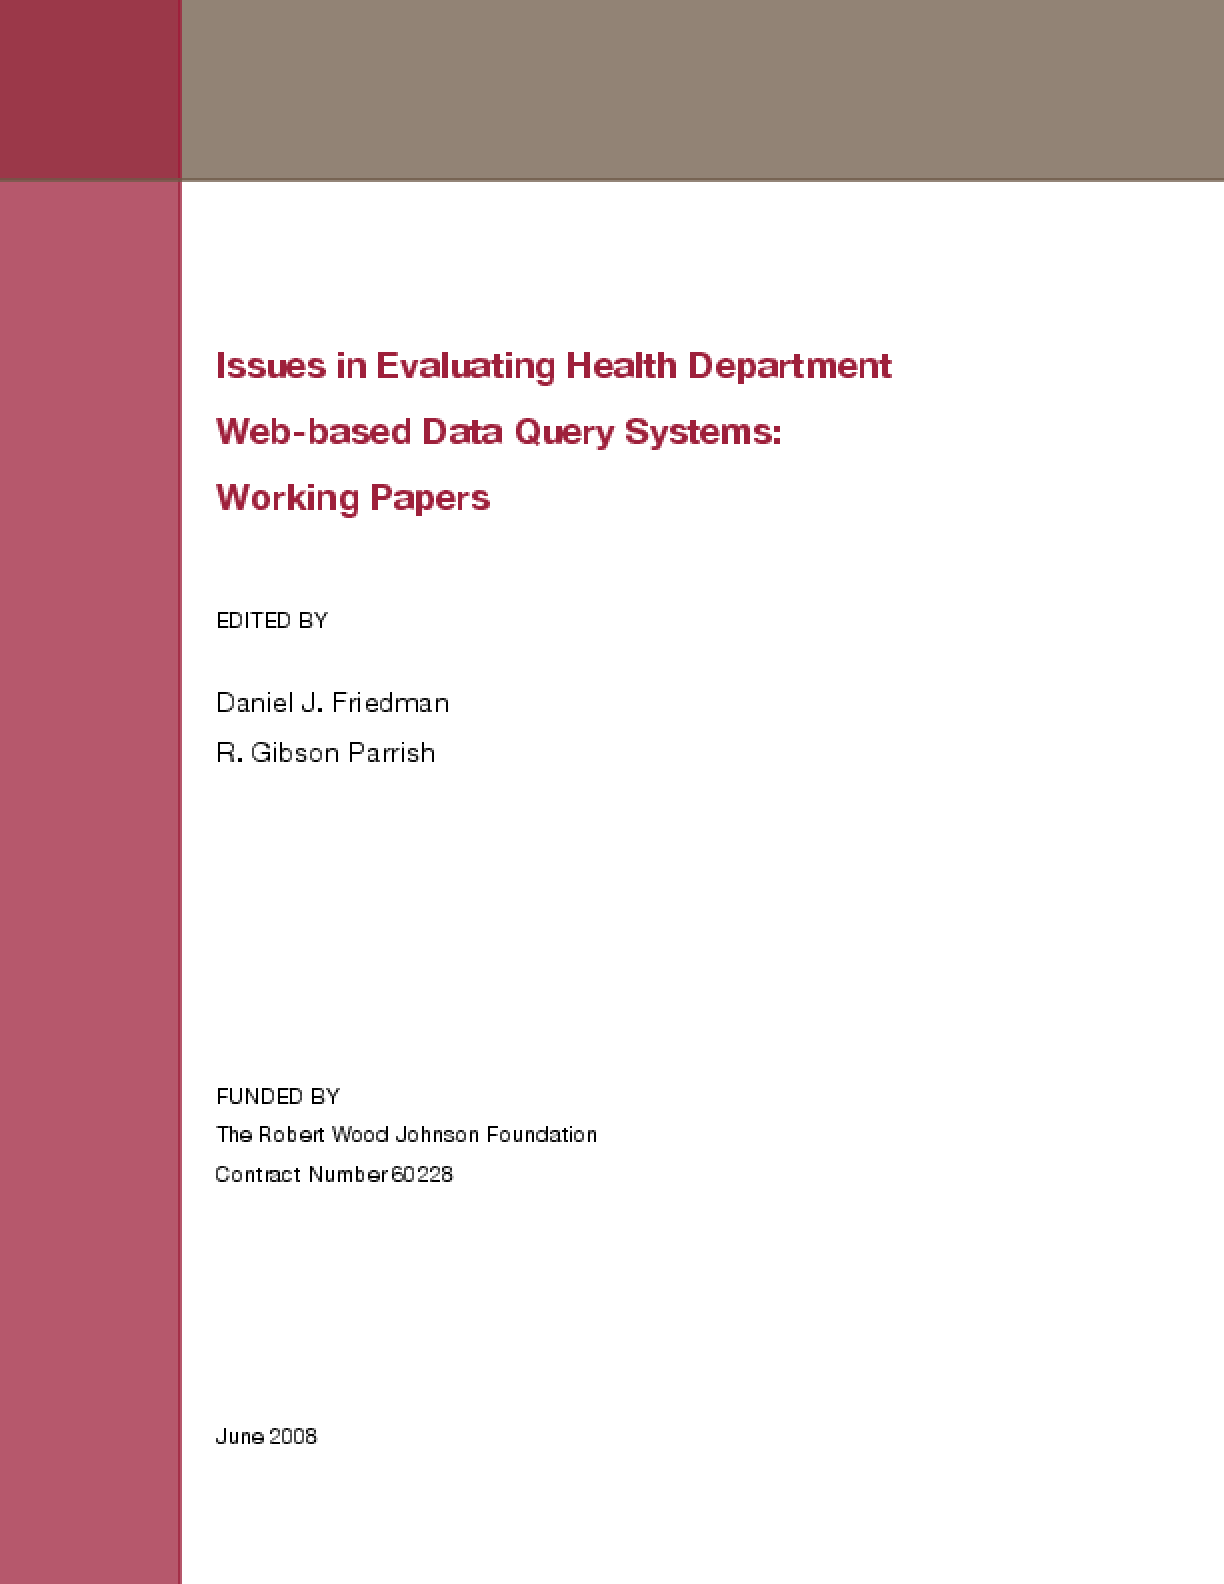 Issues in Evaluating Health Department Web-Based Data Query Systems: Working Papers